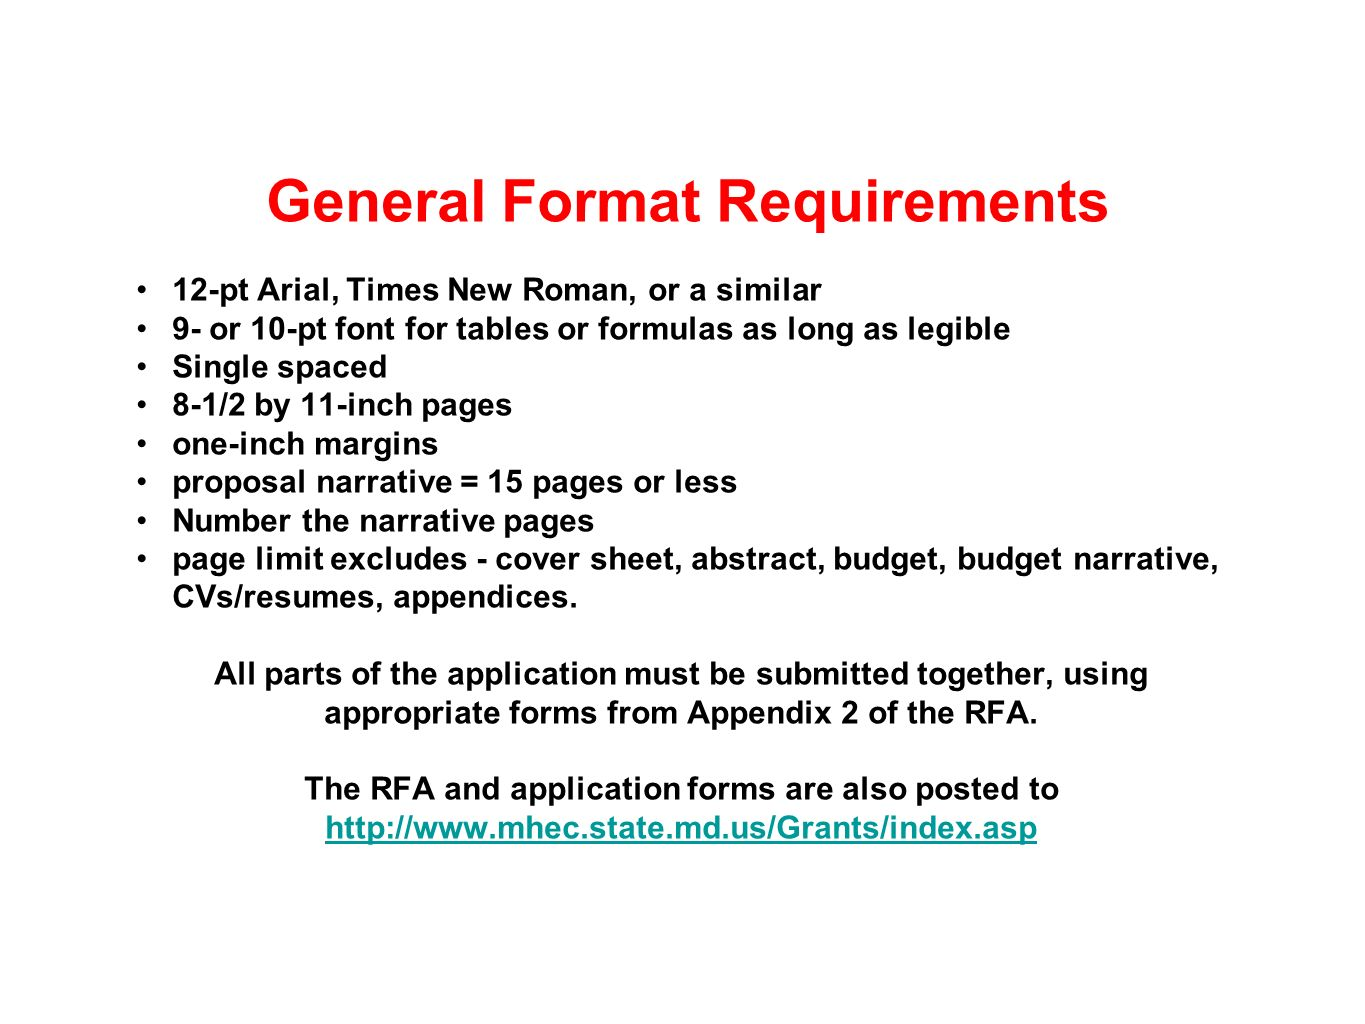 General Format Requirements 12-pt Arial, Times New Roman, or a similar 9- or 10-pt font for tables or formulas as long as legible Single spaced 8-1/2 by 11-inch pages one-inch margins proposal narrative = 15 pages or less Number the narrative pages page limit excludes - cover sheet, abstract, budget, budget narrative, CVs/resumes, appendices.